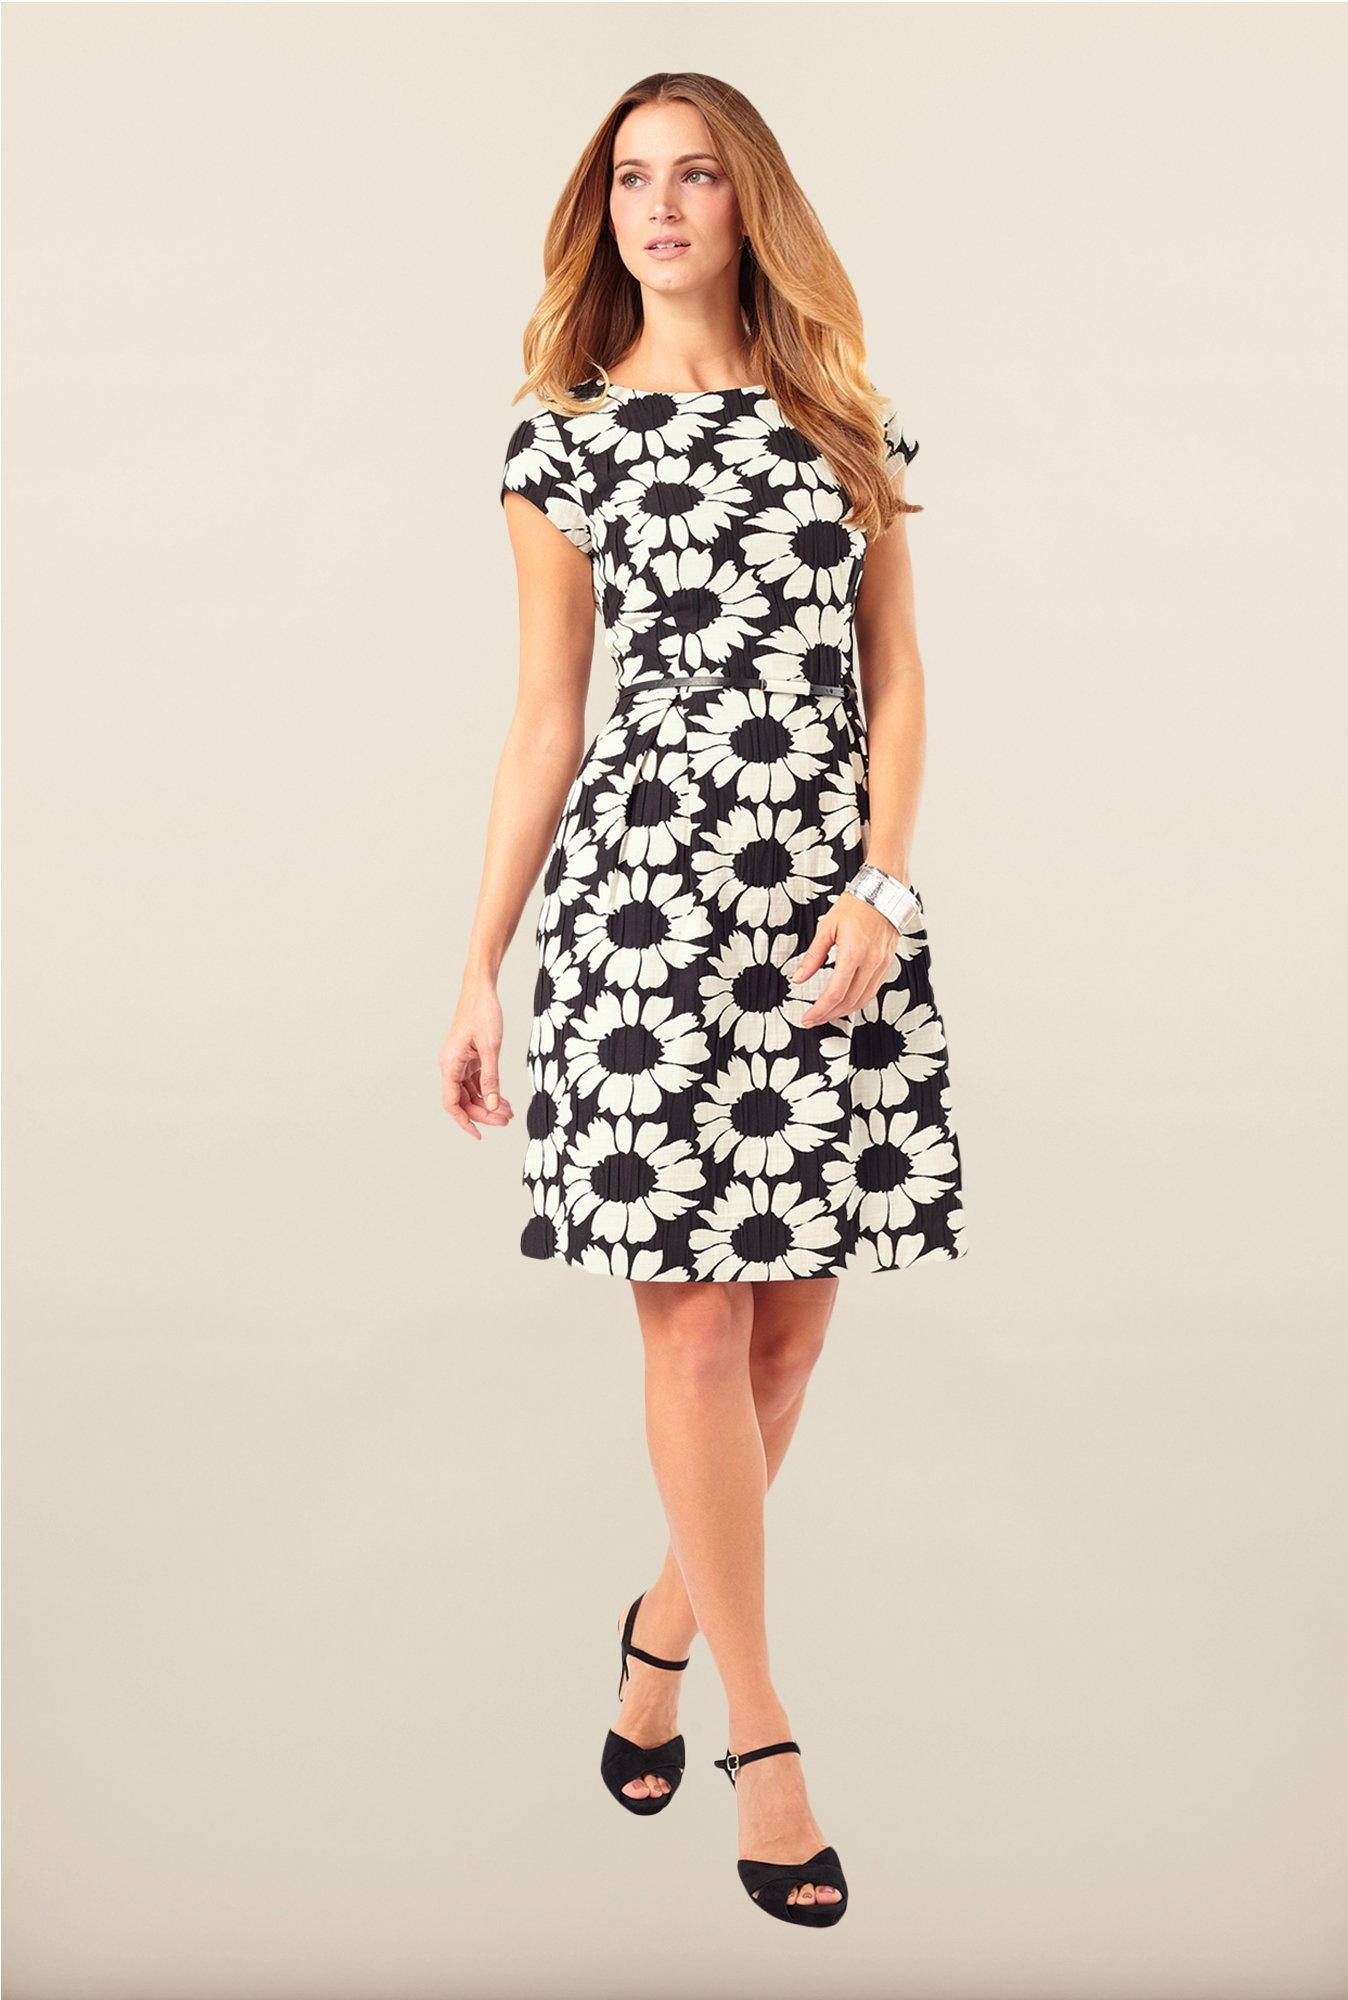 Phase Eight Black Floral Skater Dress